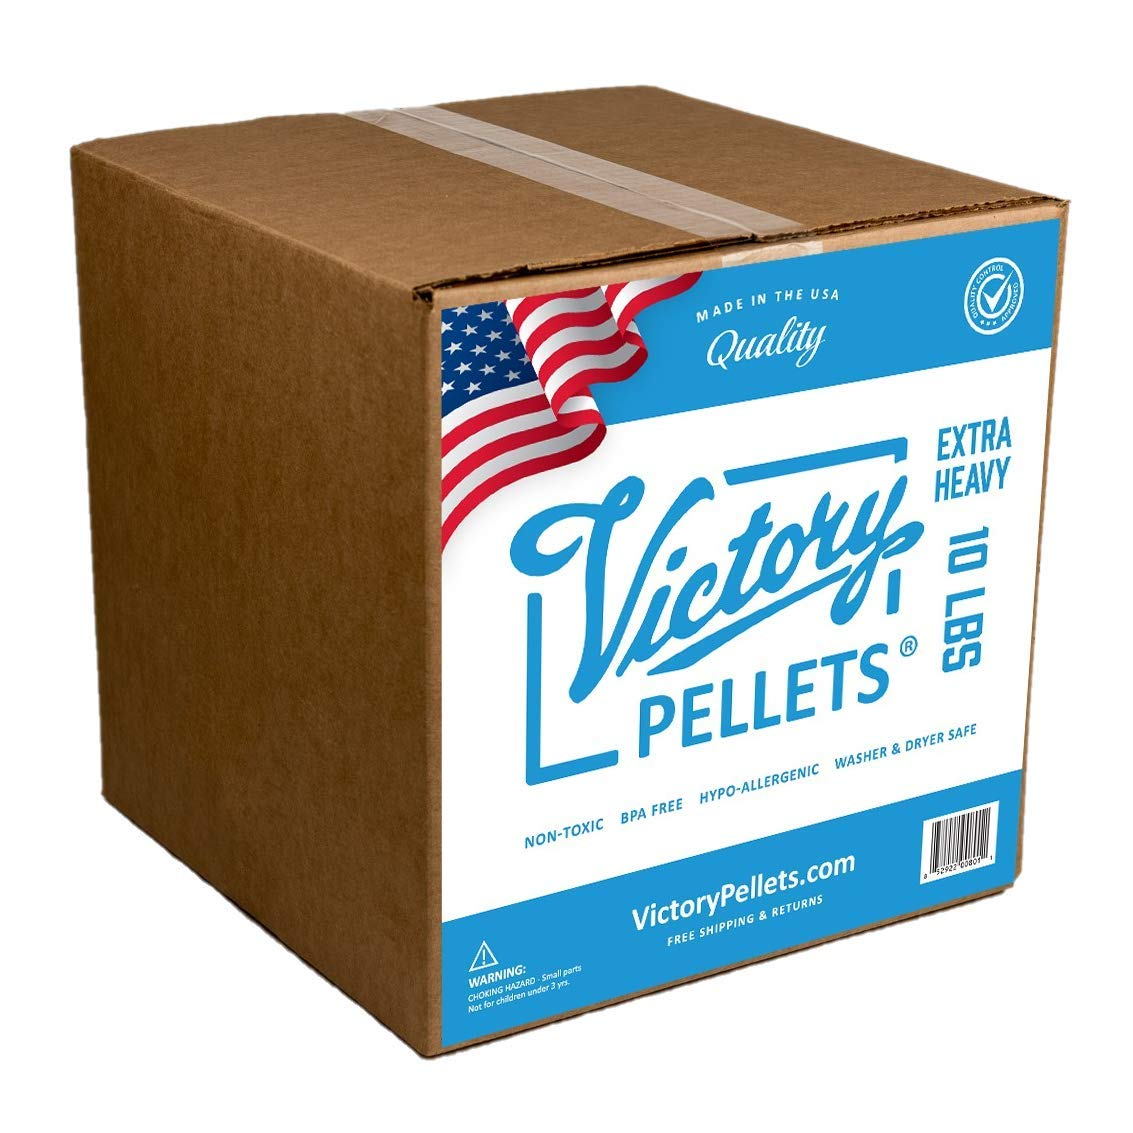 Victory Pellets Extra Heavy (10 LBS) Plastic Poly Pellets for Weighted Blankets, Vests, Cornhole Bags, Bean Bag Toss Bags, Reborn Dolls, Plush Toys, Draft Stoppers & Sensory Lap Pads. Made in USA. by Victory Pellets